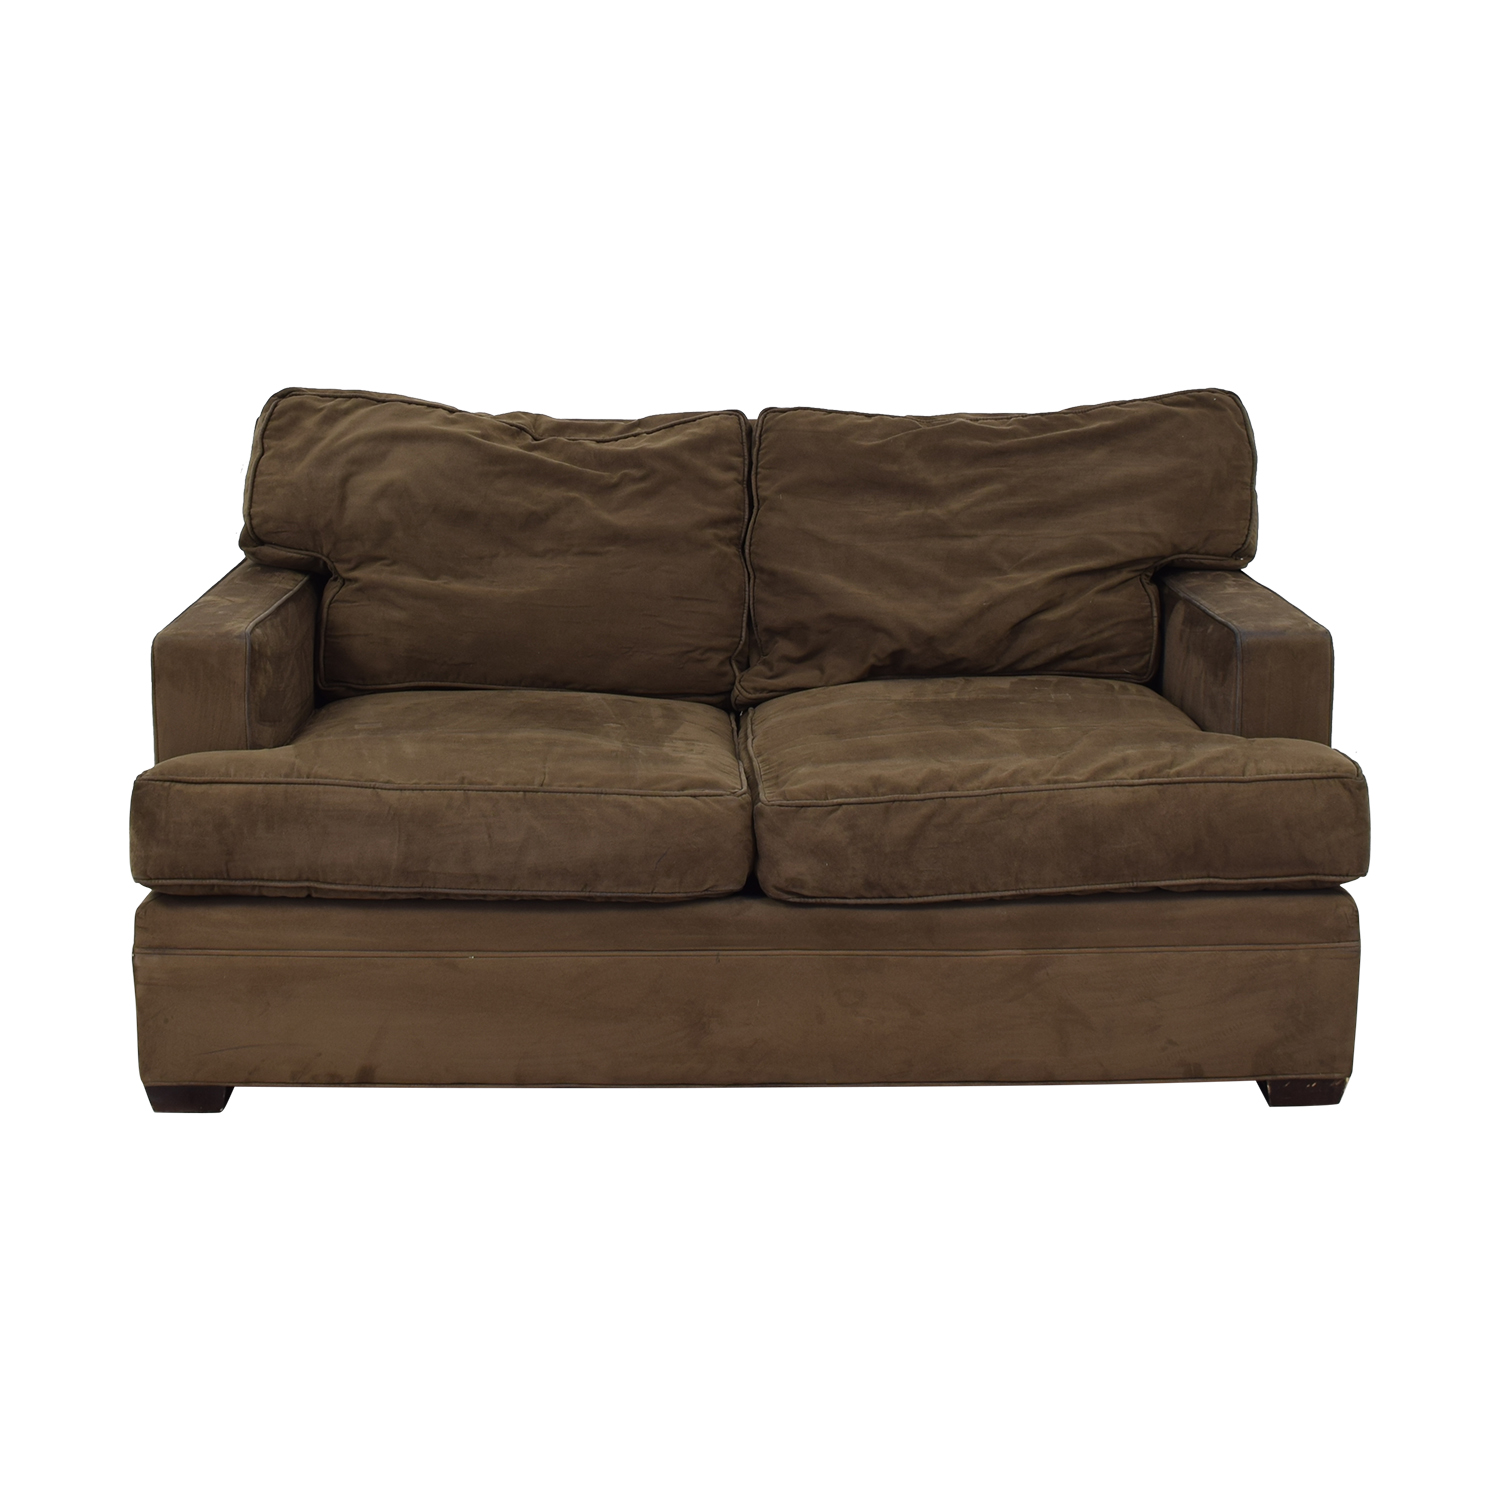 buy Crate & Barrel Brown Suede Loveseat Crate & Barrel